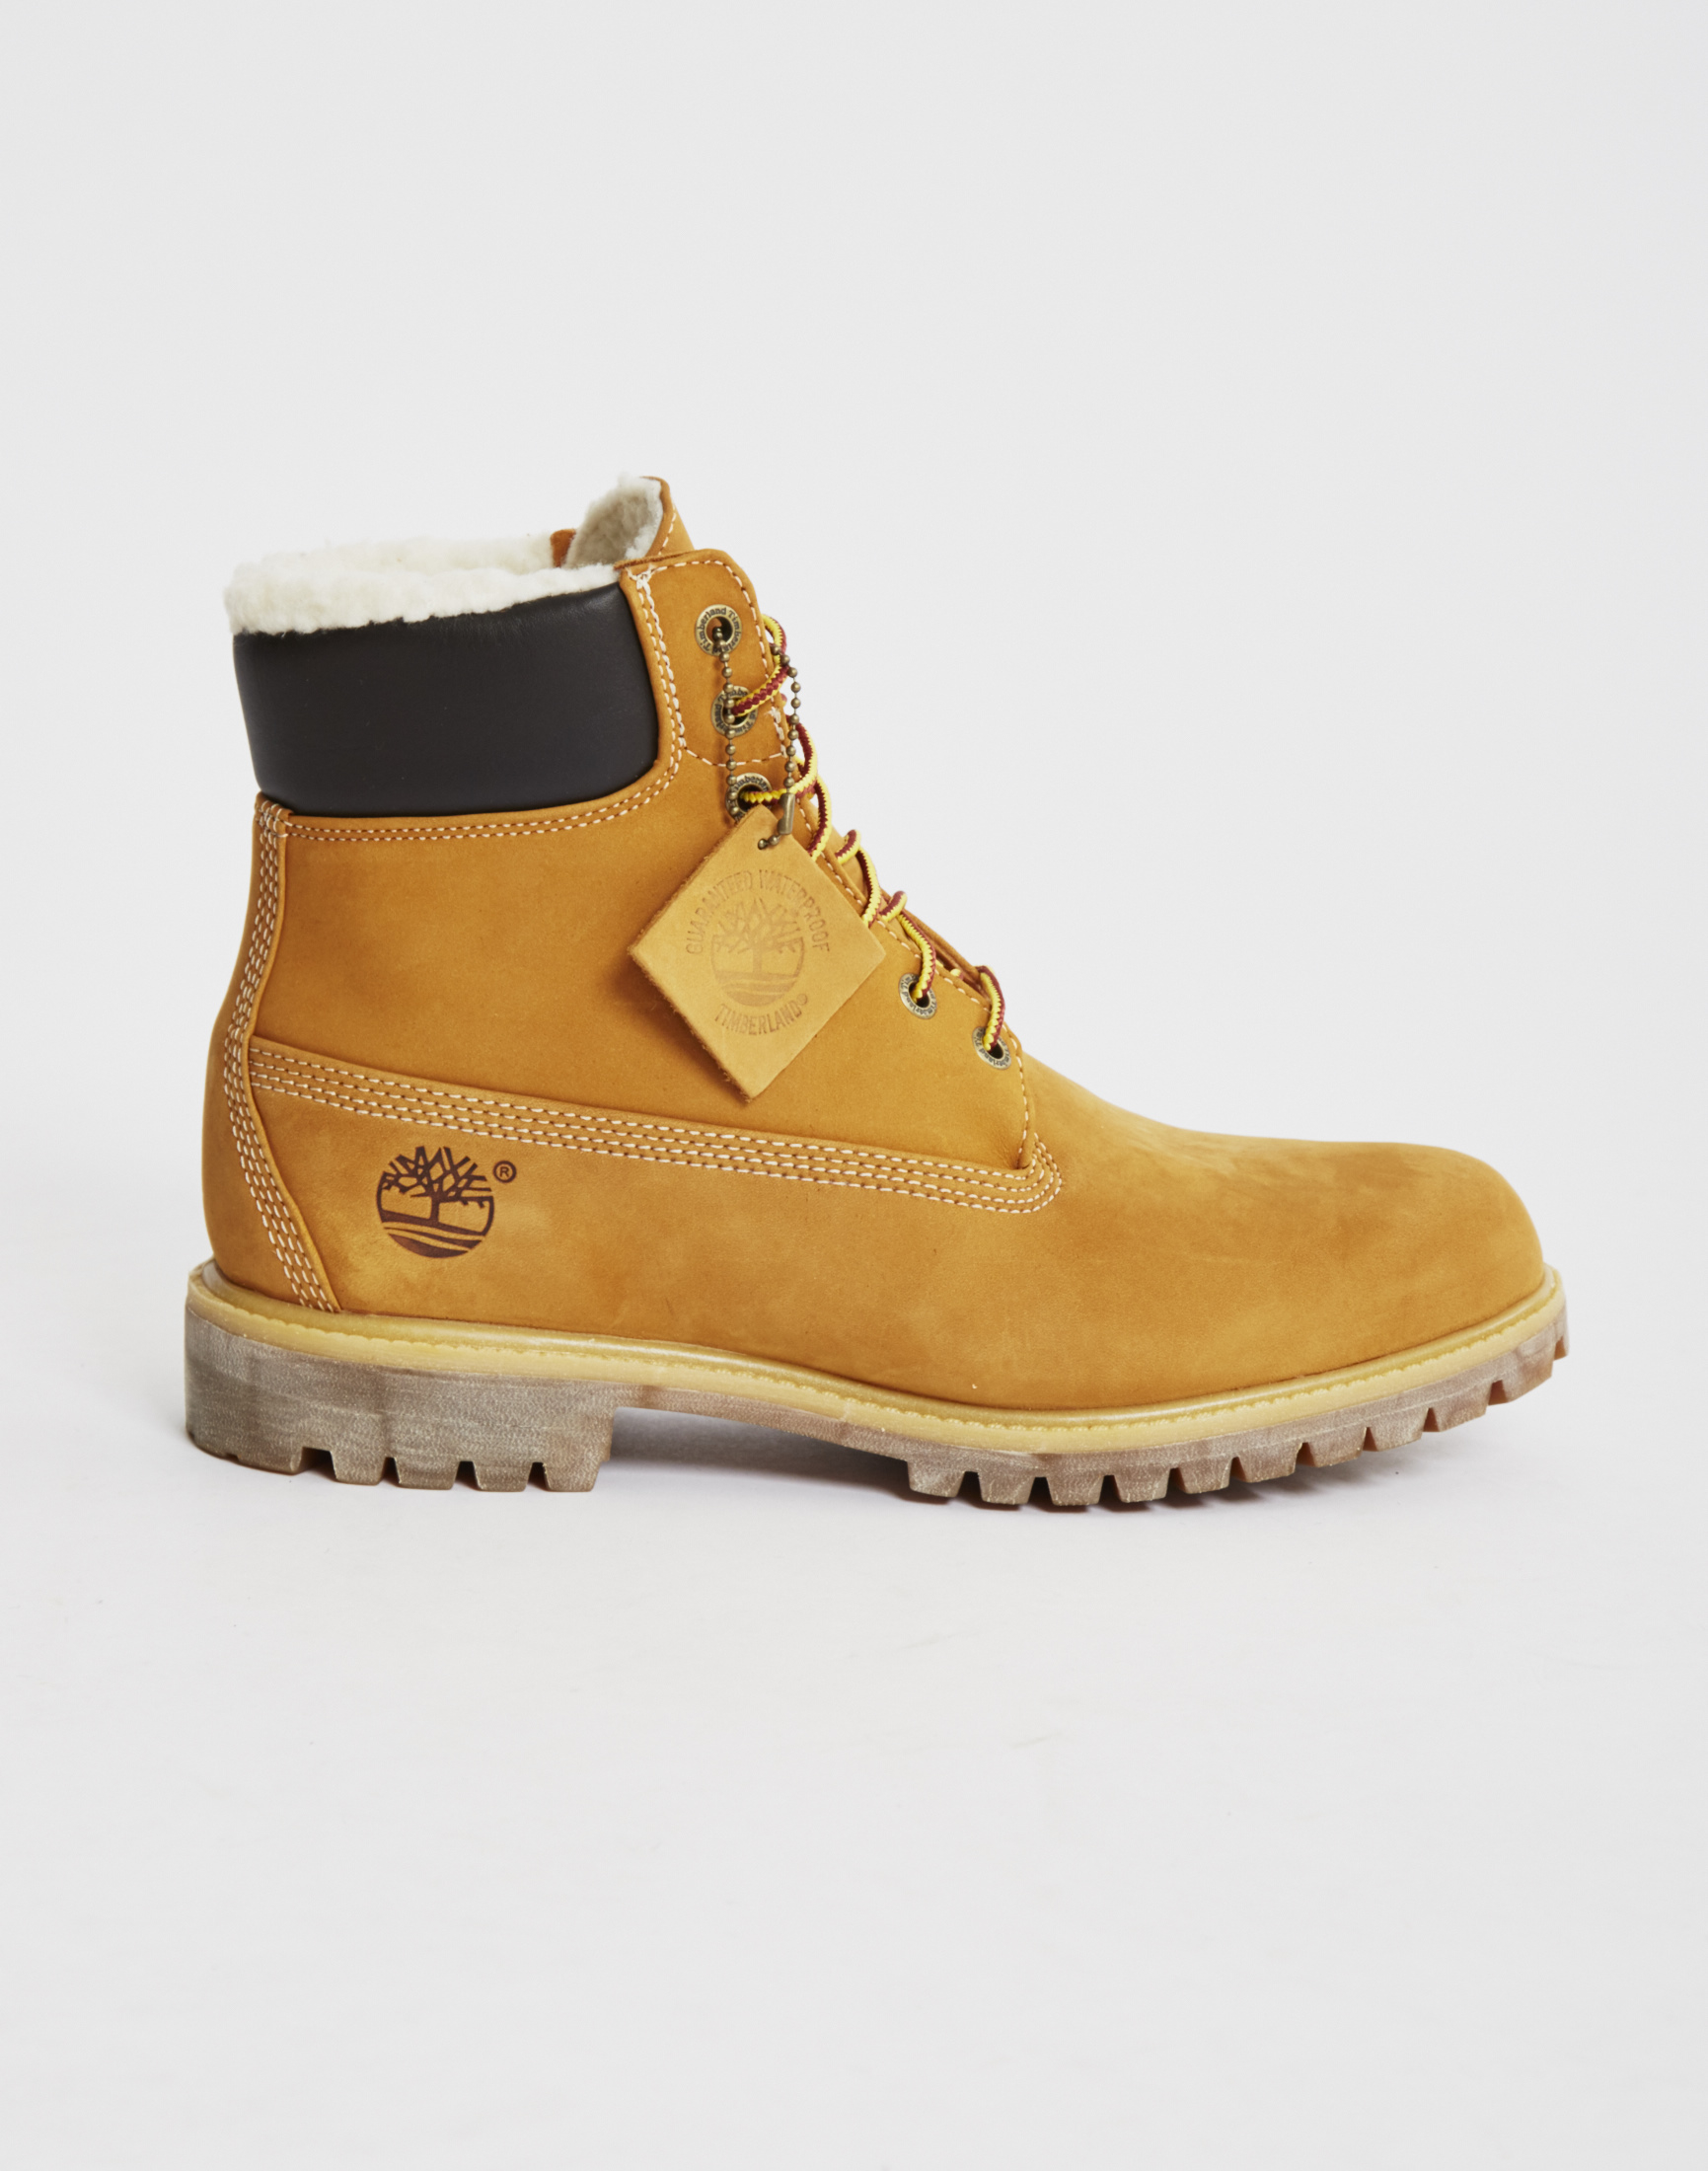 241a889ff2d5 Timberland Heritage 6